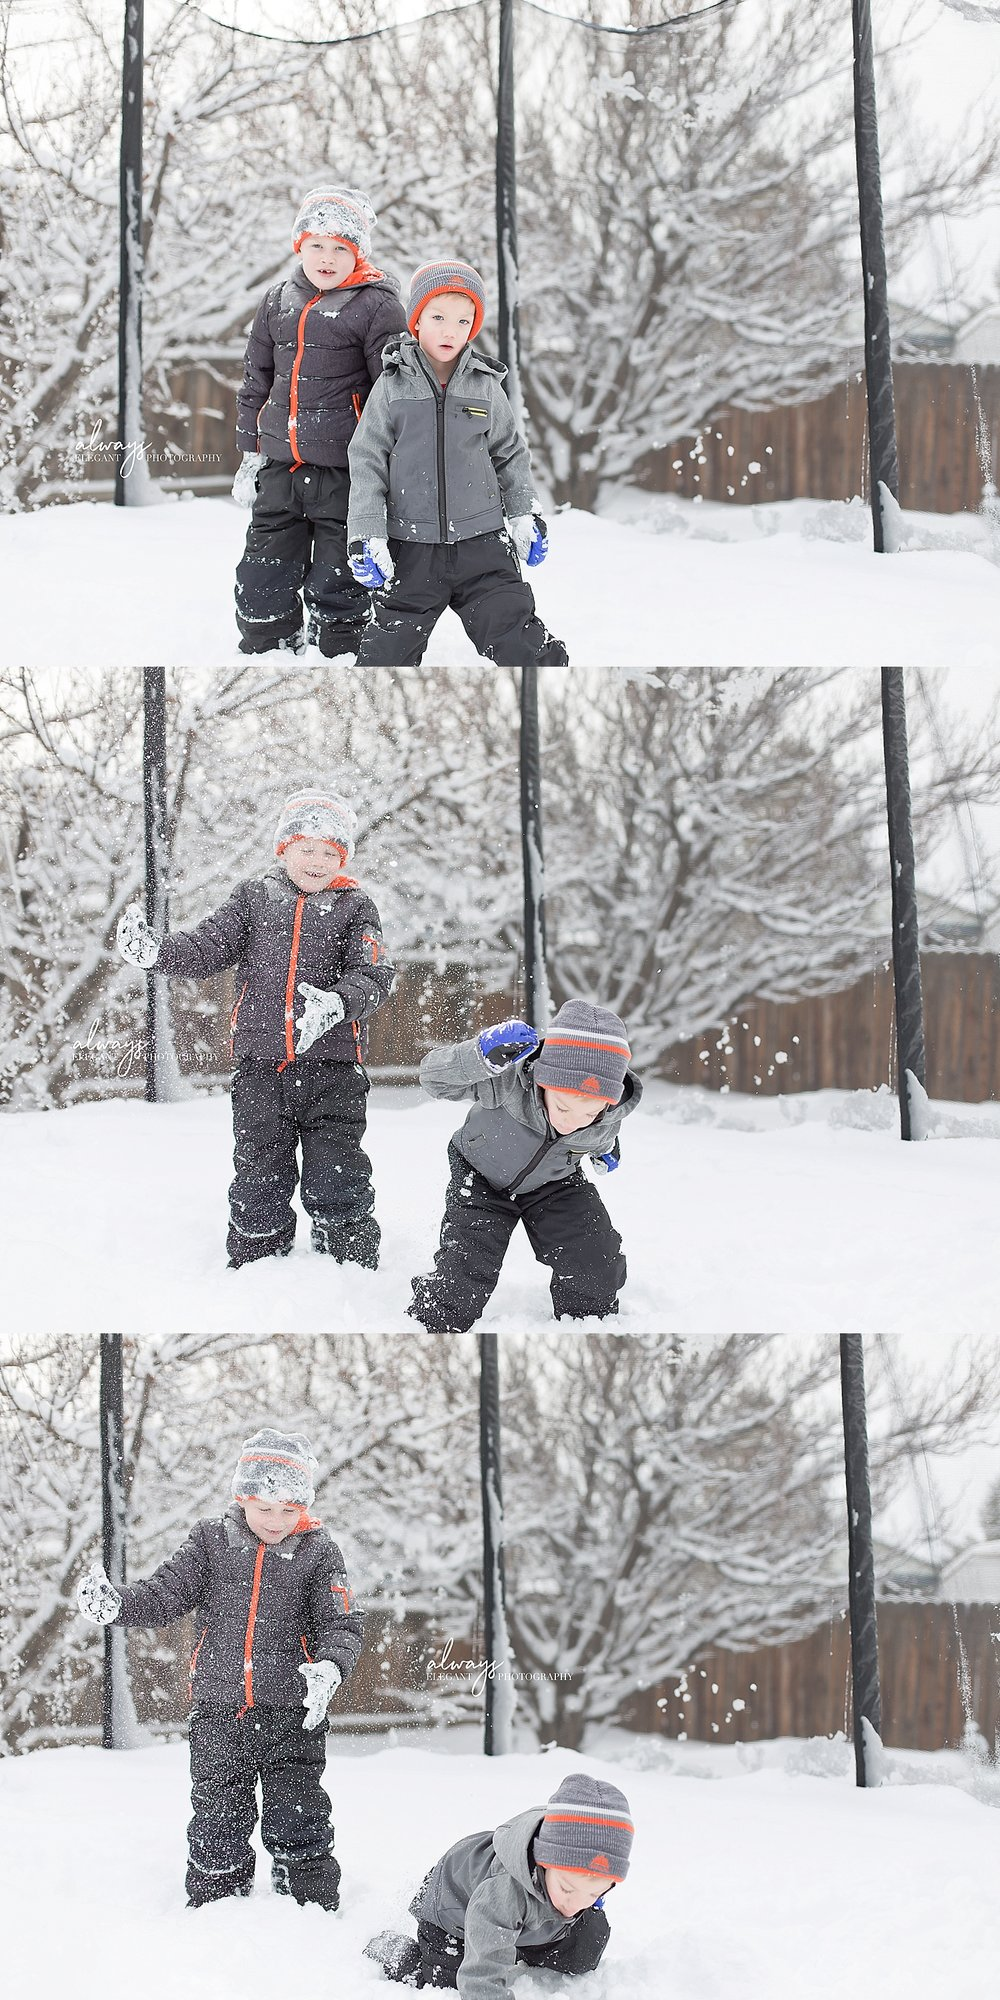 Taking-Pictures-In-The-Snow-Always-Elegant-Photography_0007.jpg